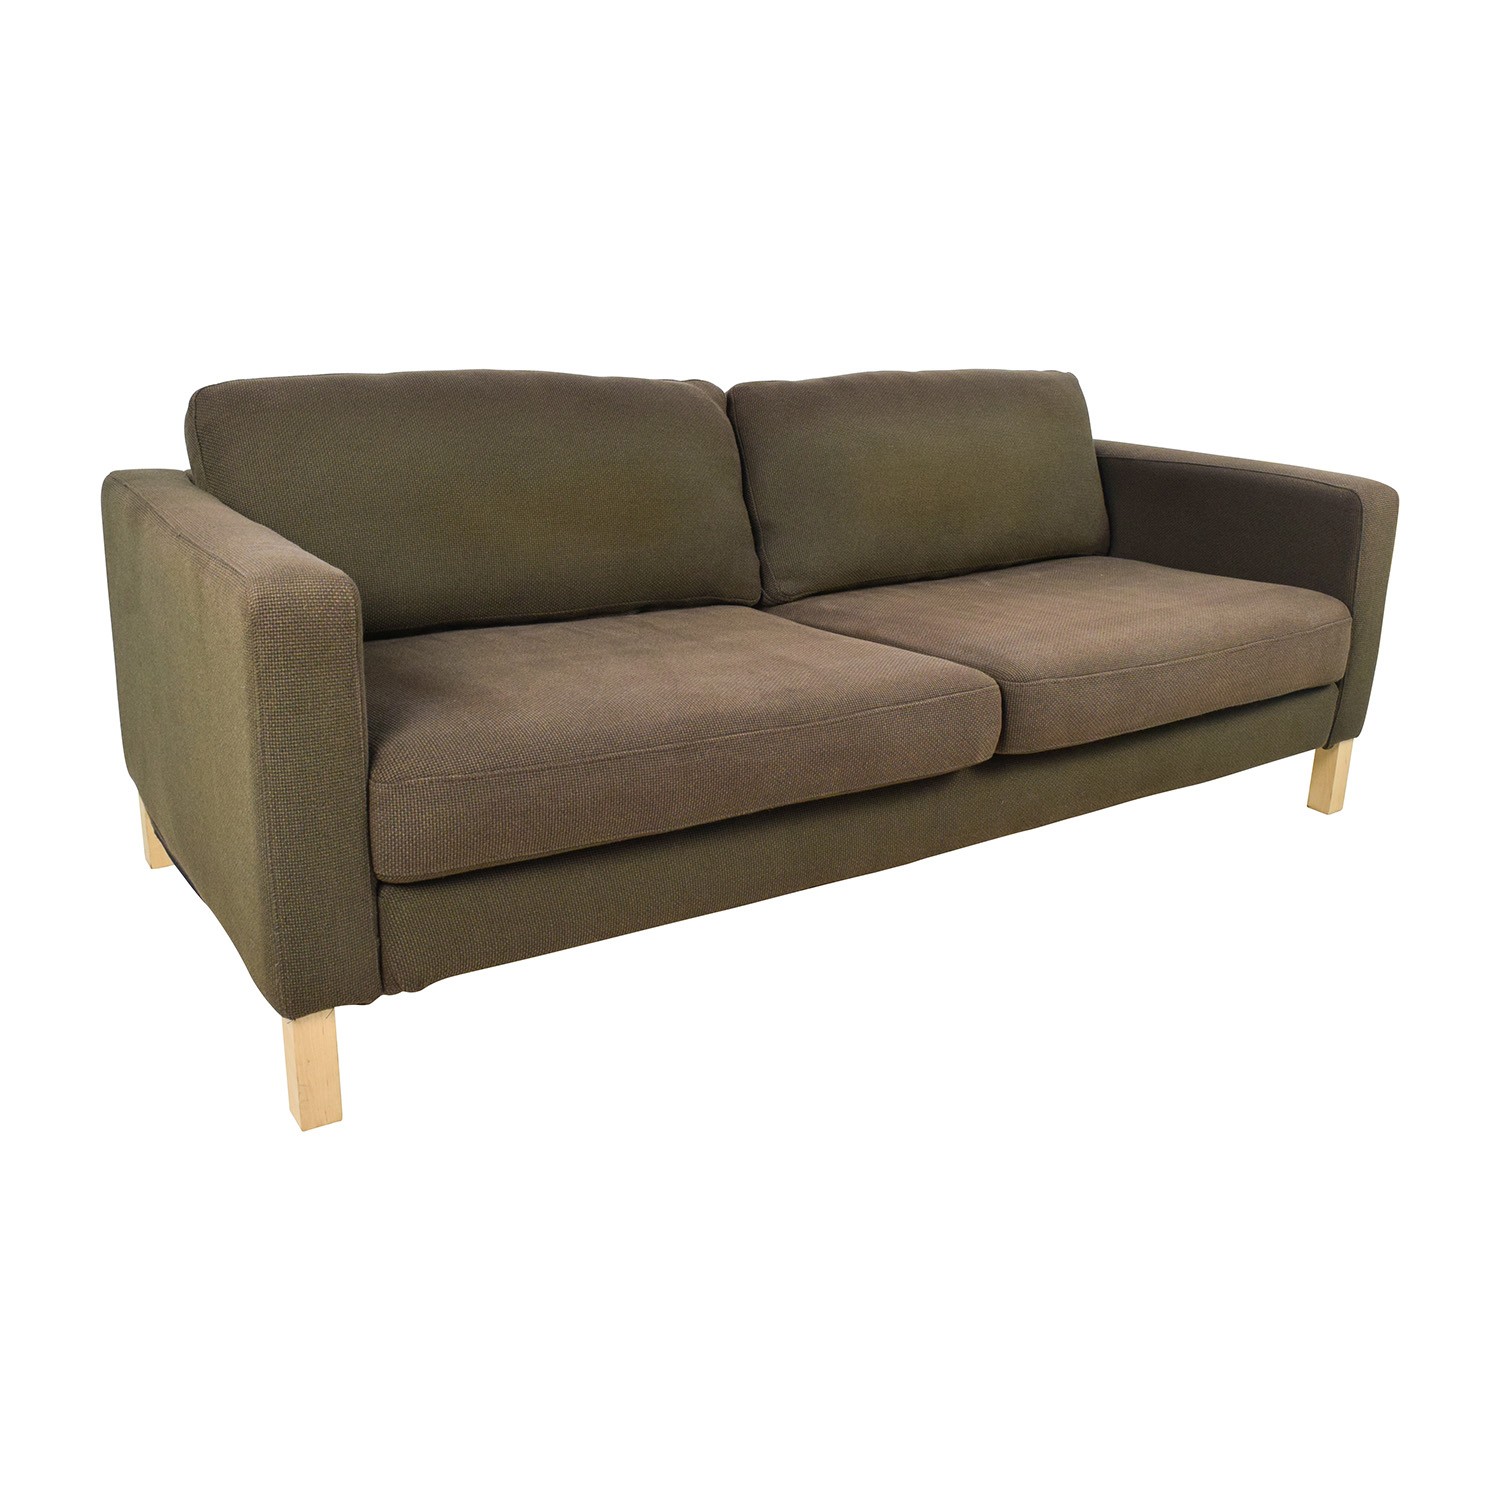 Kleine couch ikea 25 best ideas about ikea sofa bed on for Ecksofa couch